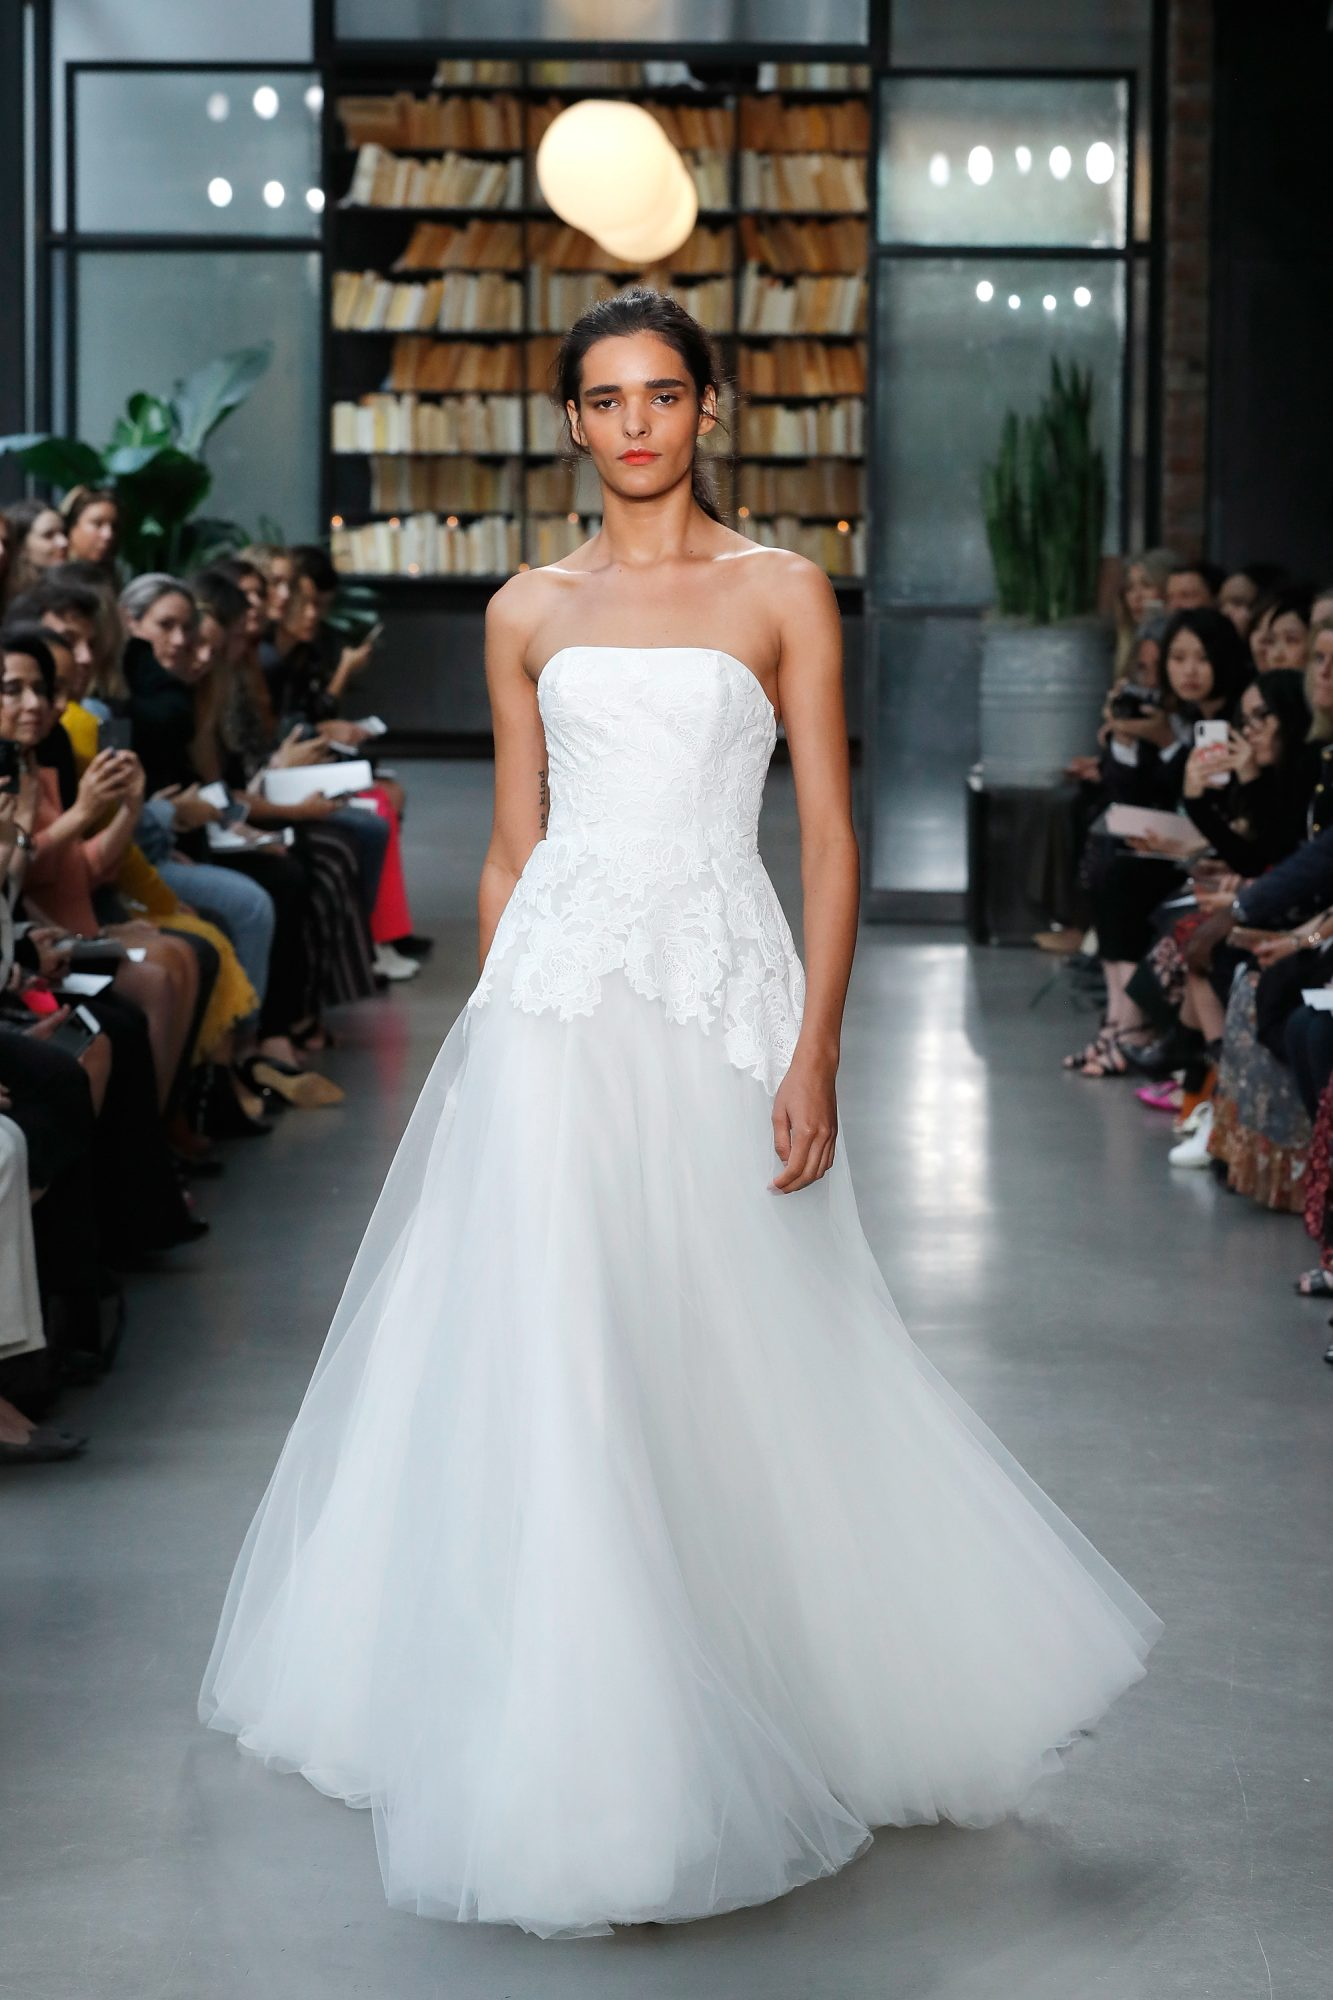 nouvelle amsale wedding dress strapless tulle a-line